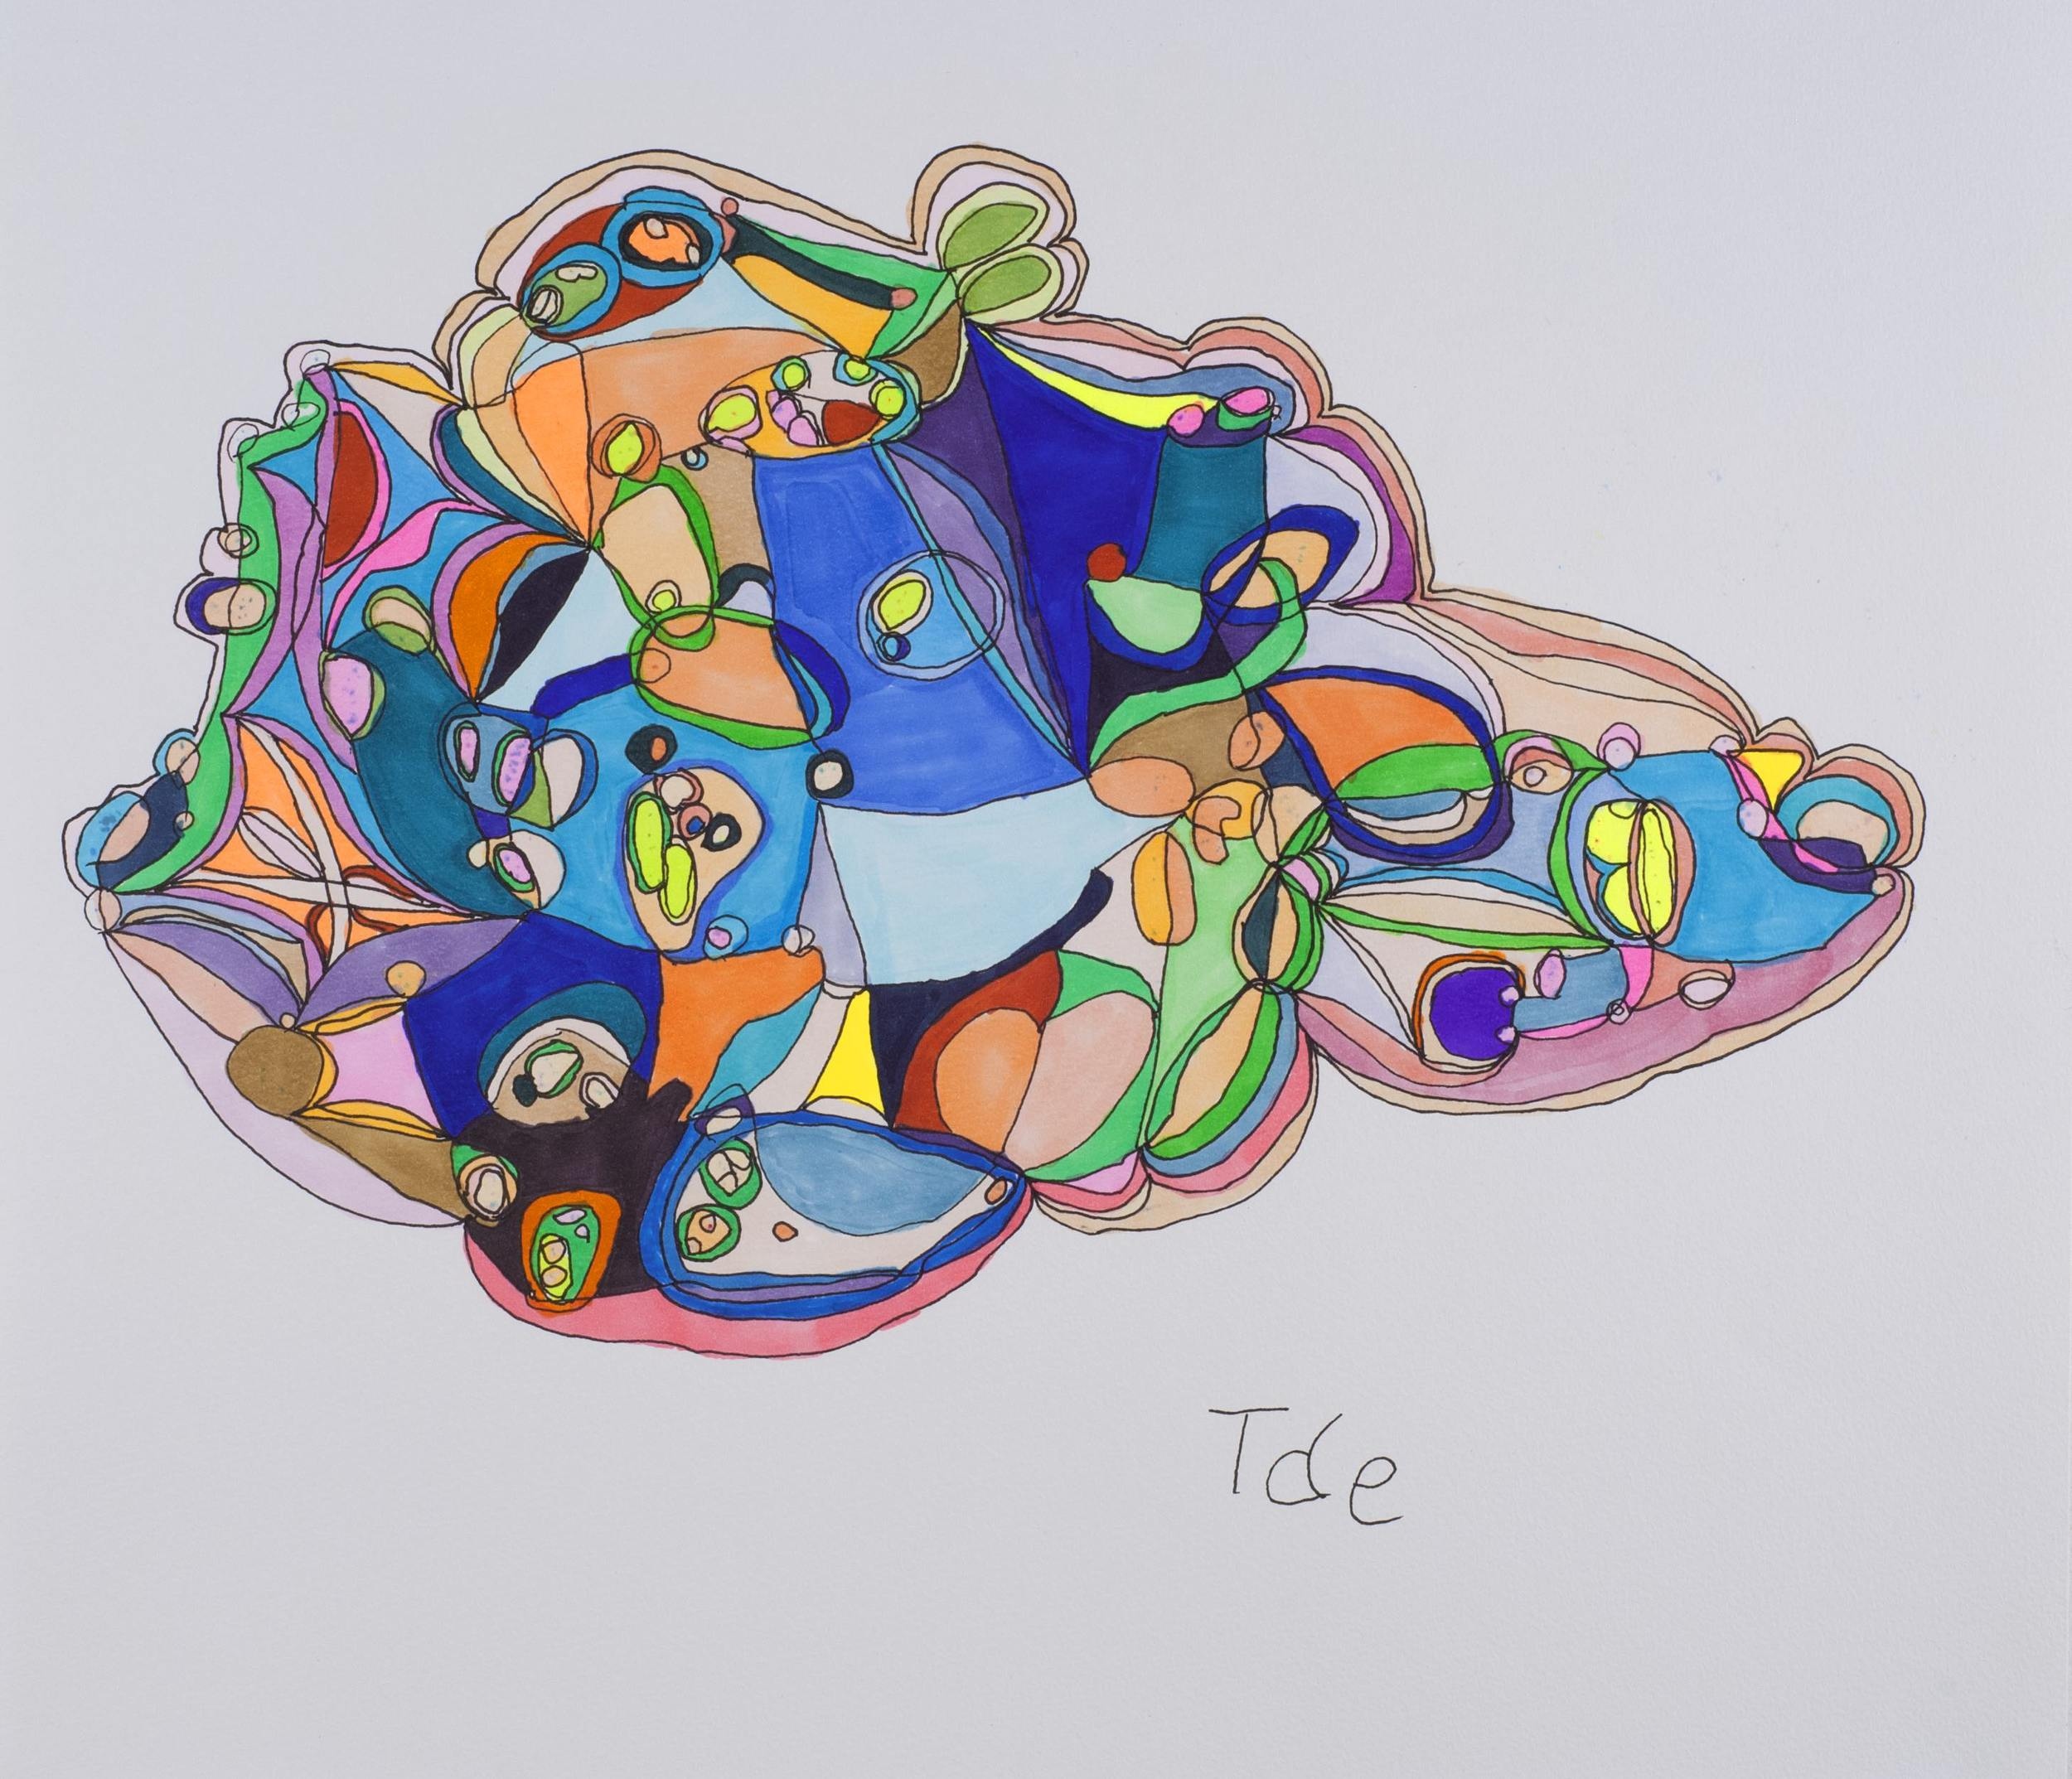 Tae Takubo    Untitled  , 2012 Marker on paper 12.8 x 14.49 inches 32.5 x 36.8 cm TTk 4